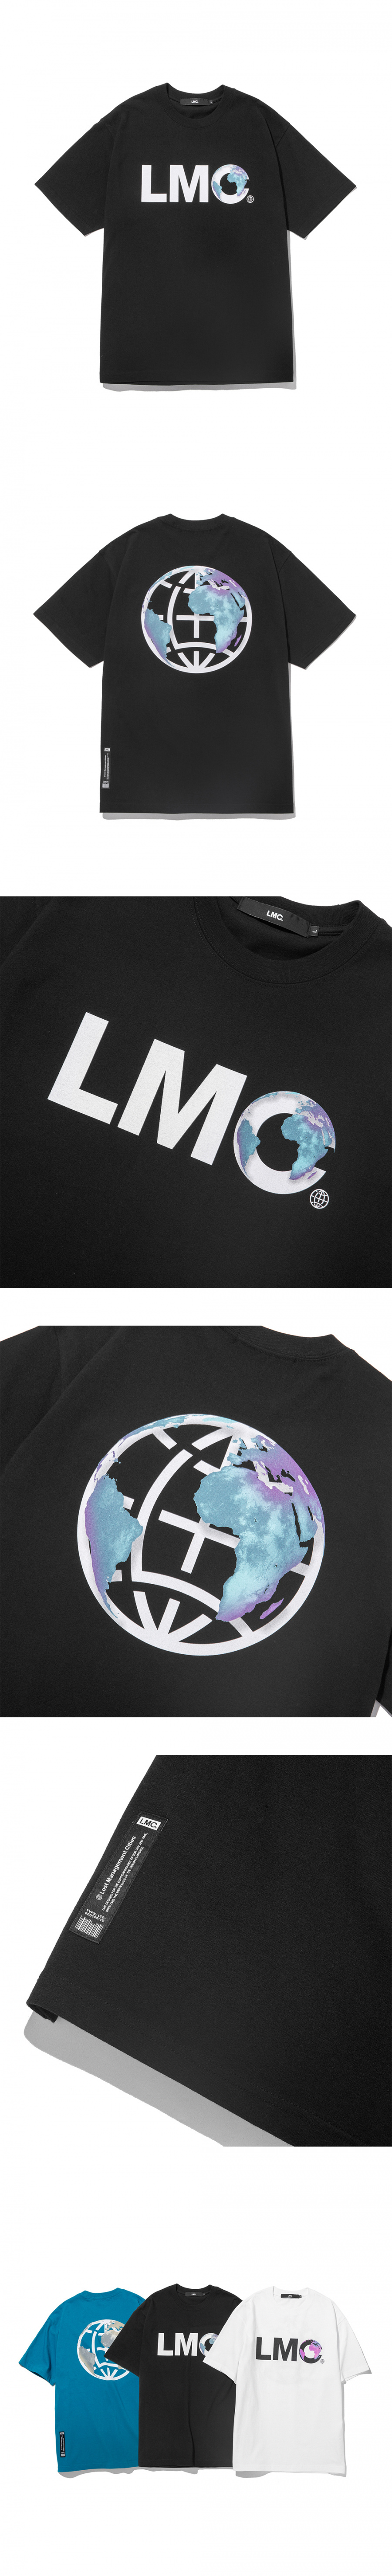 엘엠씨(LMC) LMC EARTH LOGO TEE black